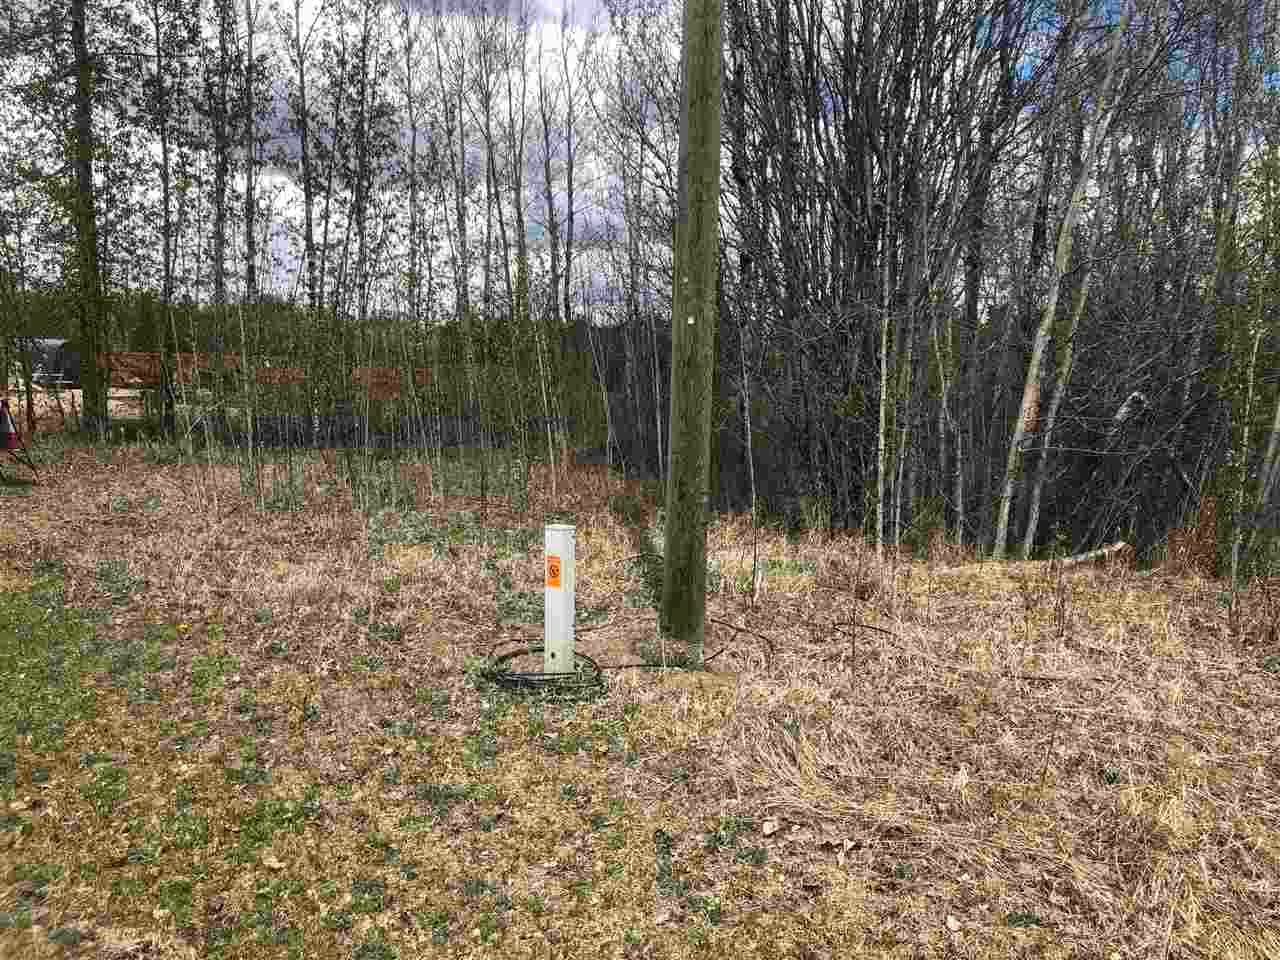 Main Photo: 93-15065 Twp Rd 470: Rural Wetaskiwin County Rural Land/Vacant Lot for sale : MLS®# E4243875